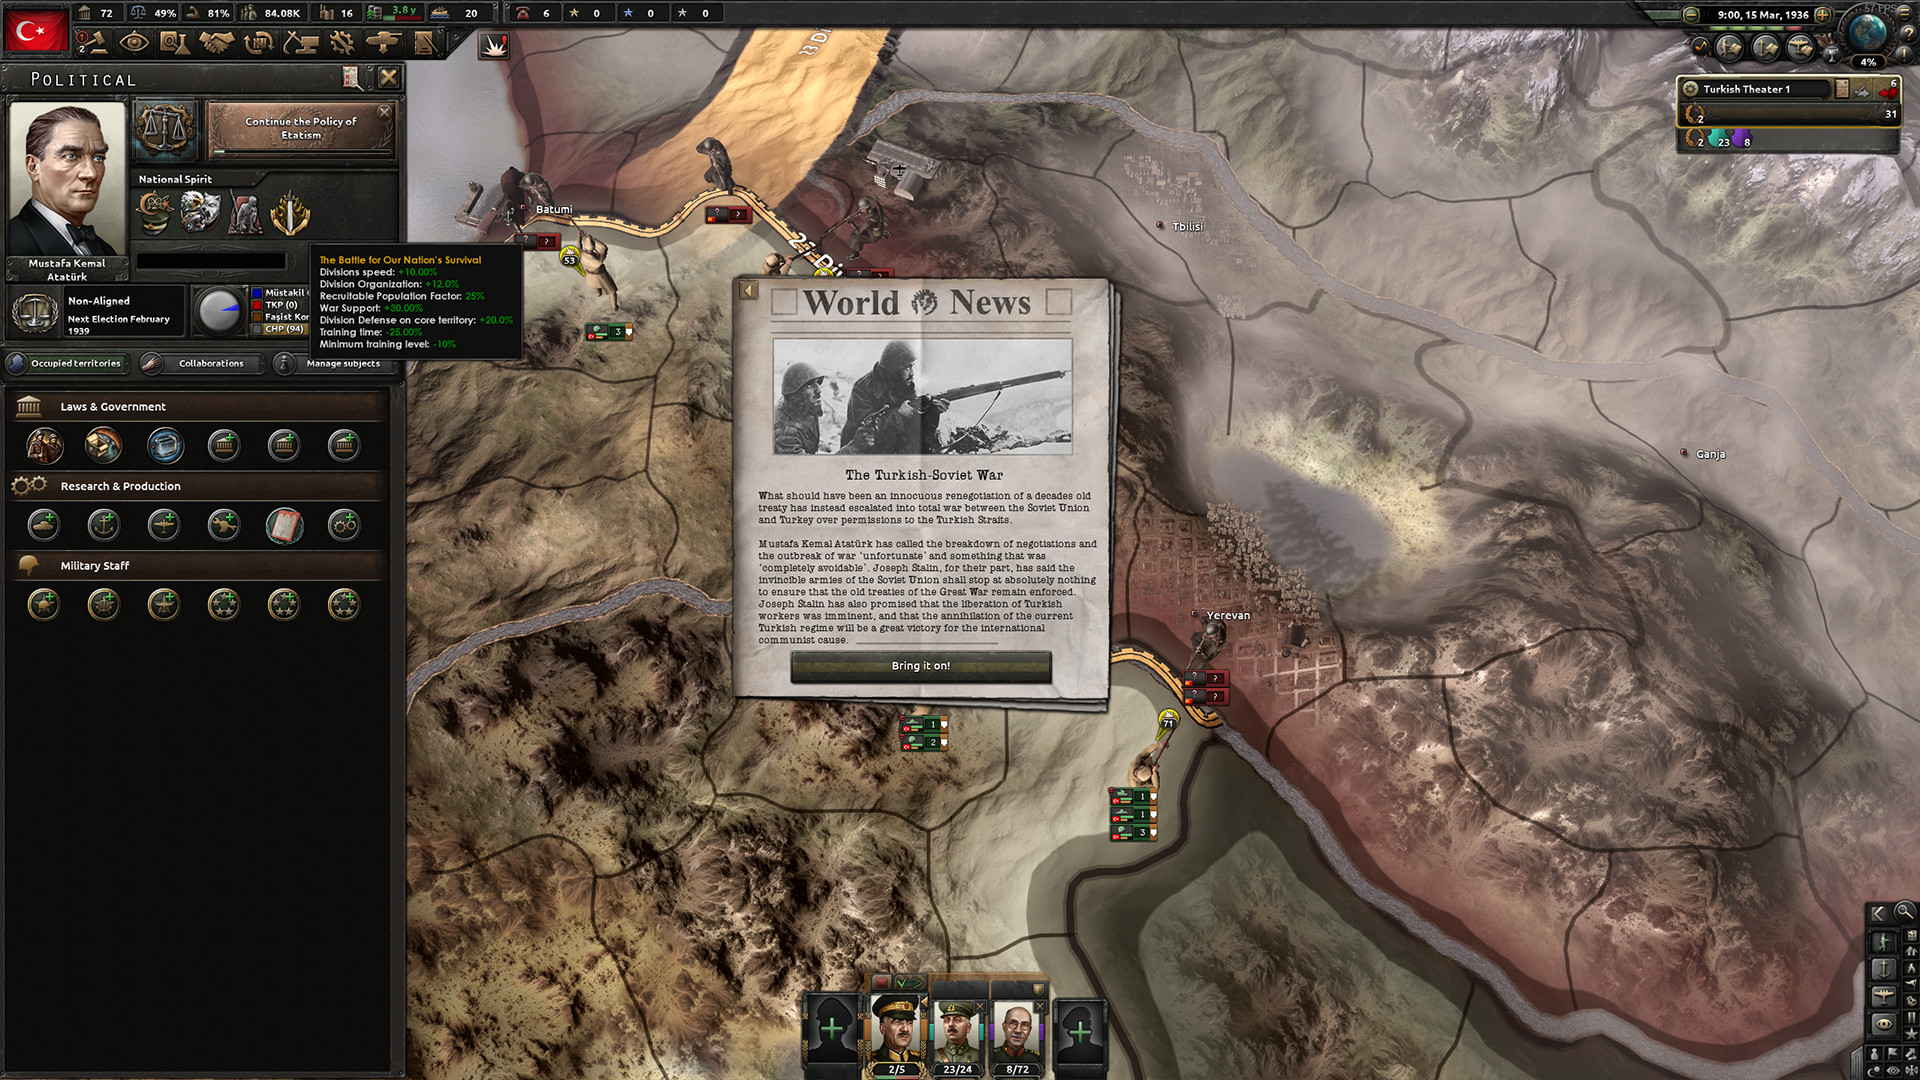 Expansion - Hearts of Iron IV: Battle for the Bosporus